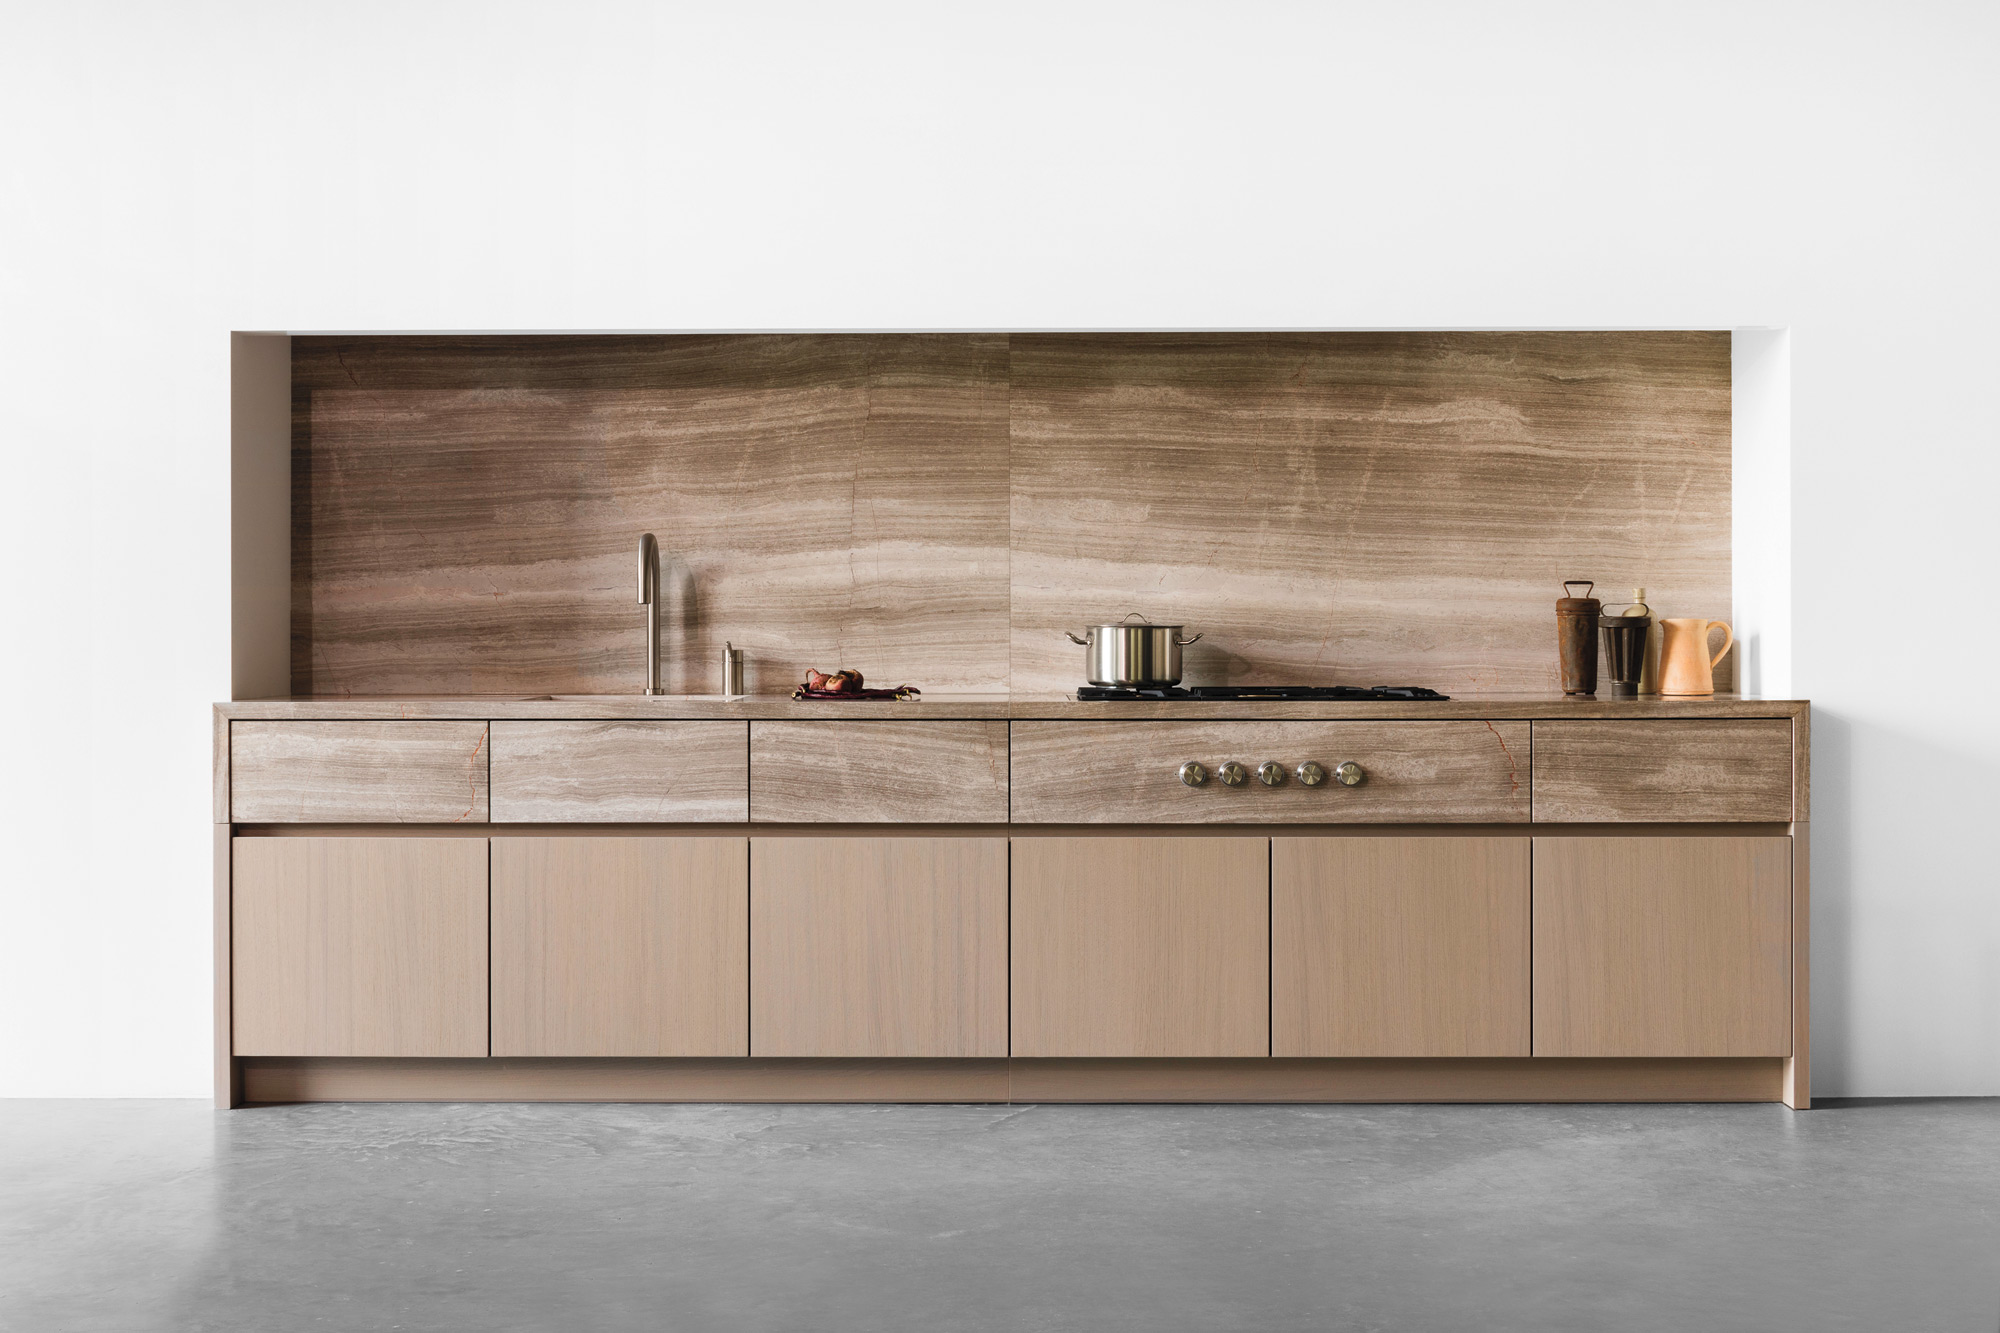 Piet Boon Designs Elegant Kitchen And Bath Fittings For Cocoon